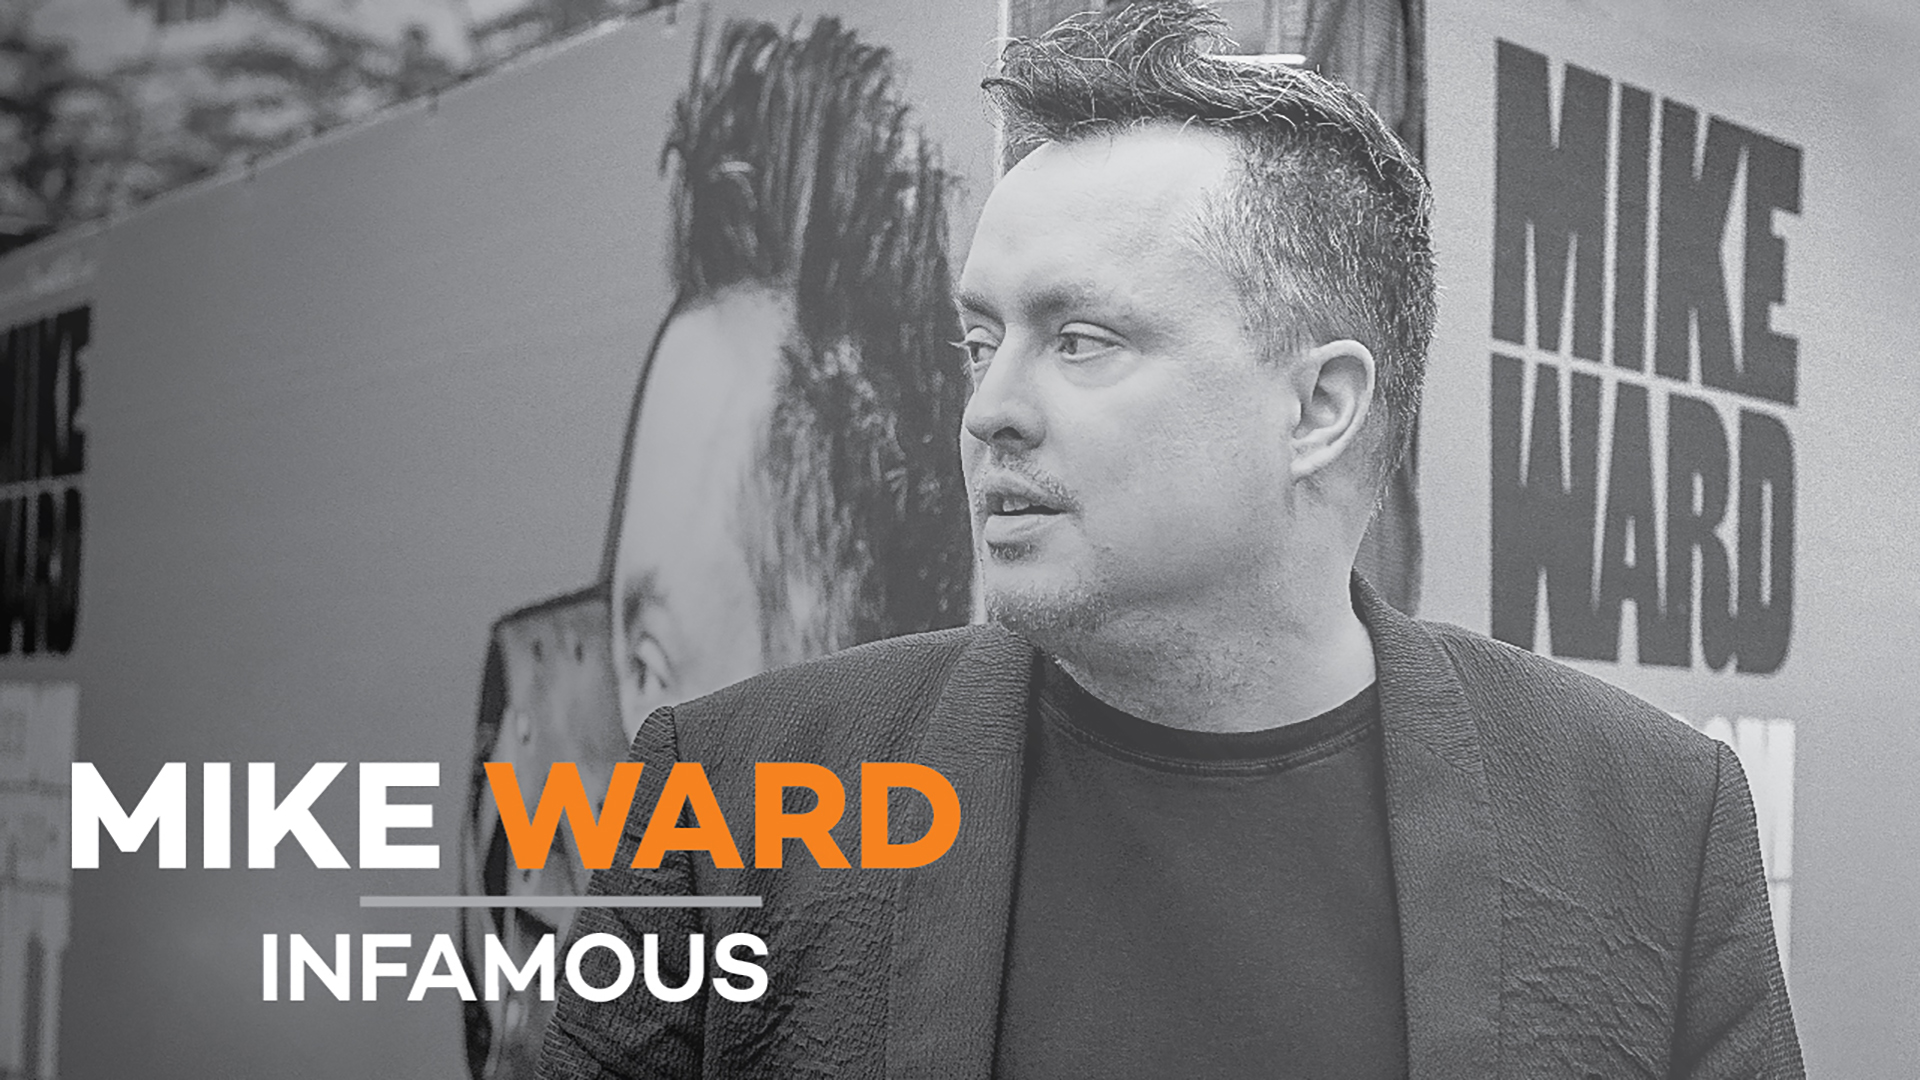 Mike Ward - Infamous